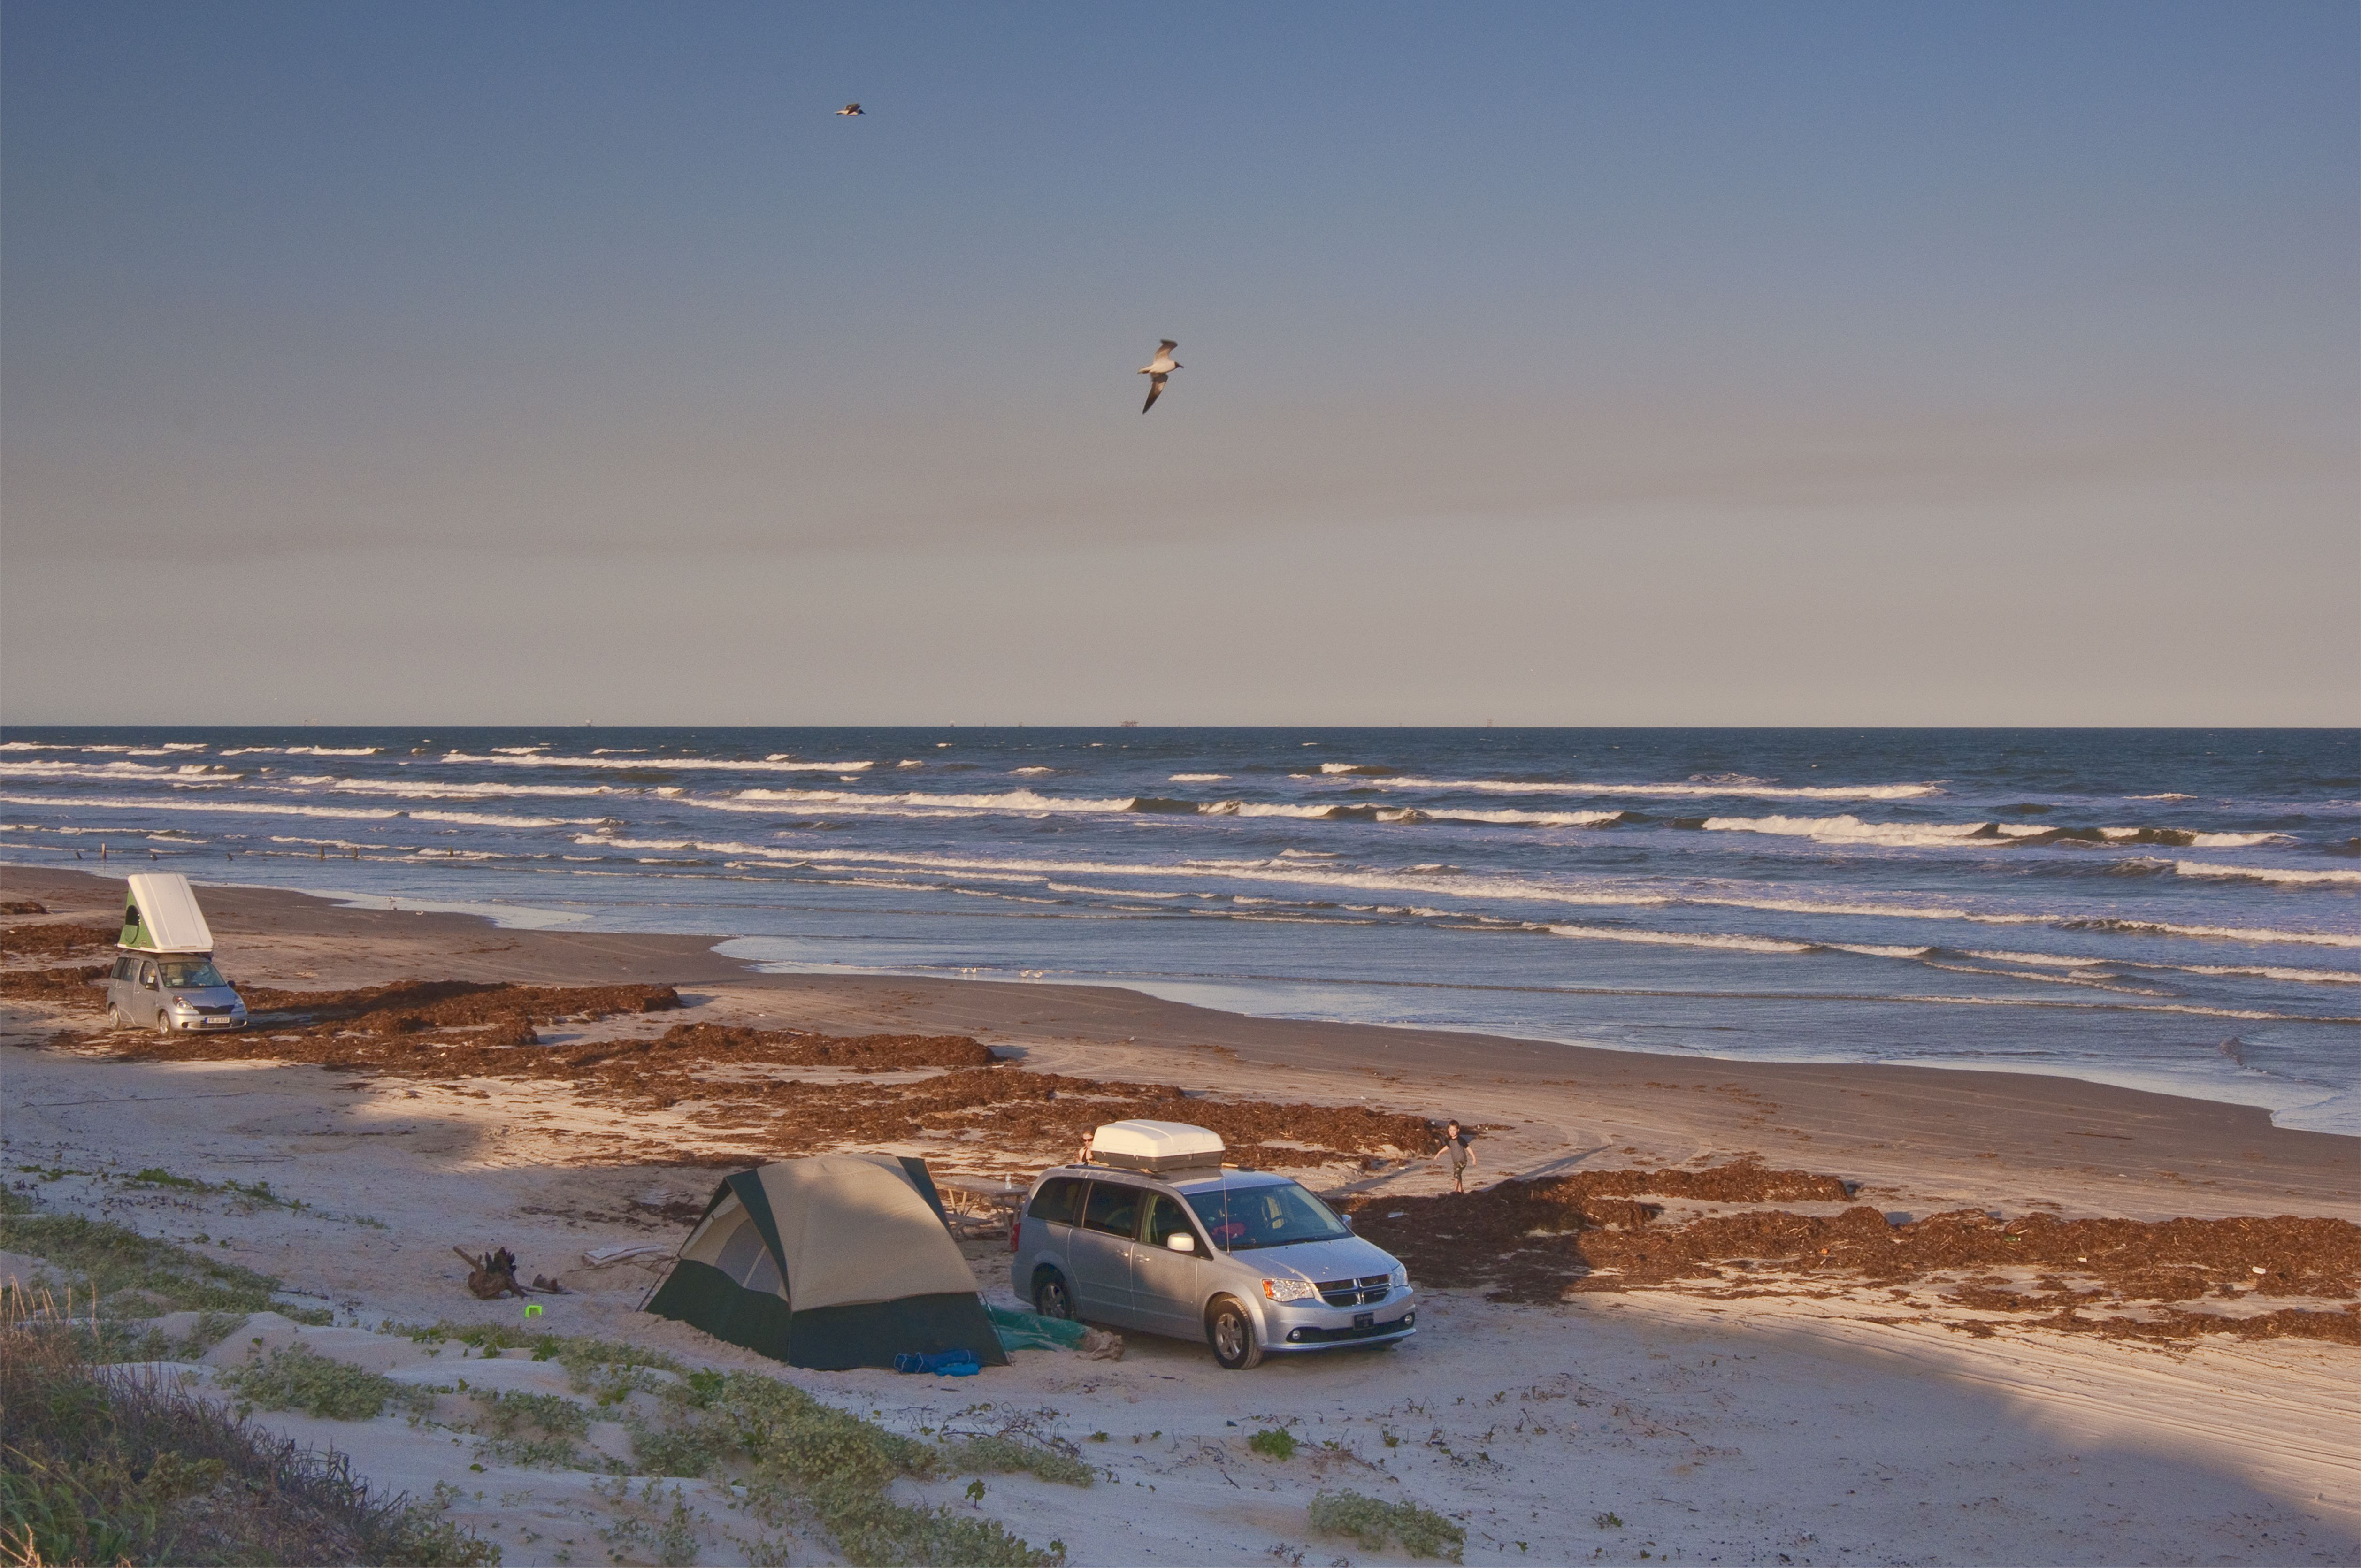 Beach camping in Mustang Island State Park, Texas